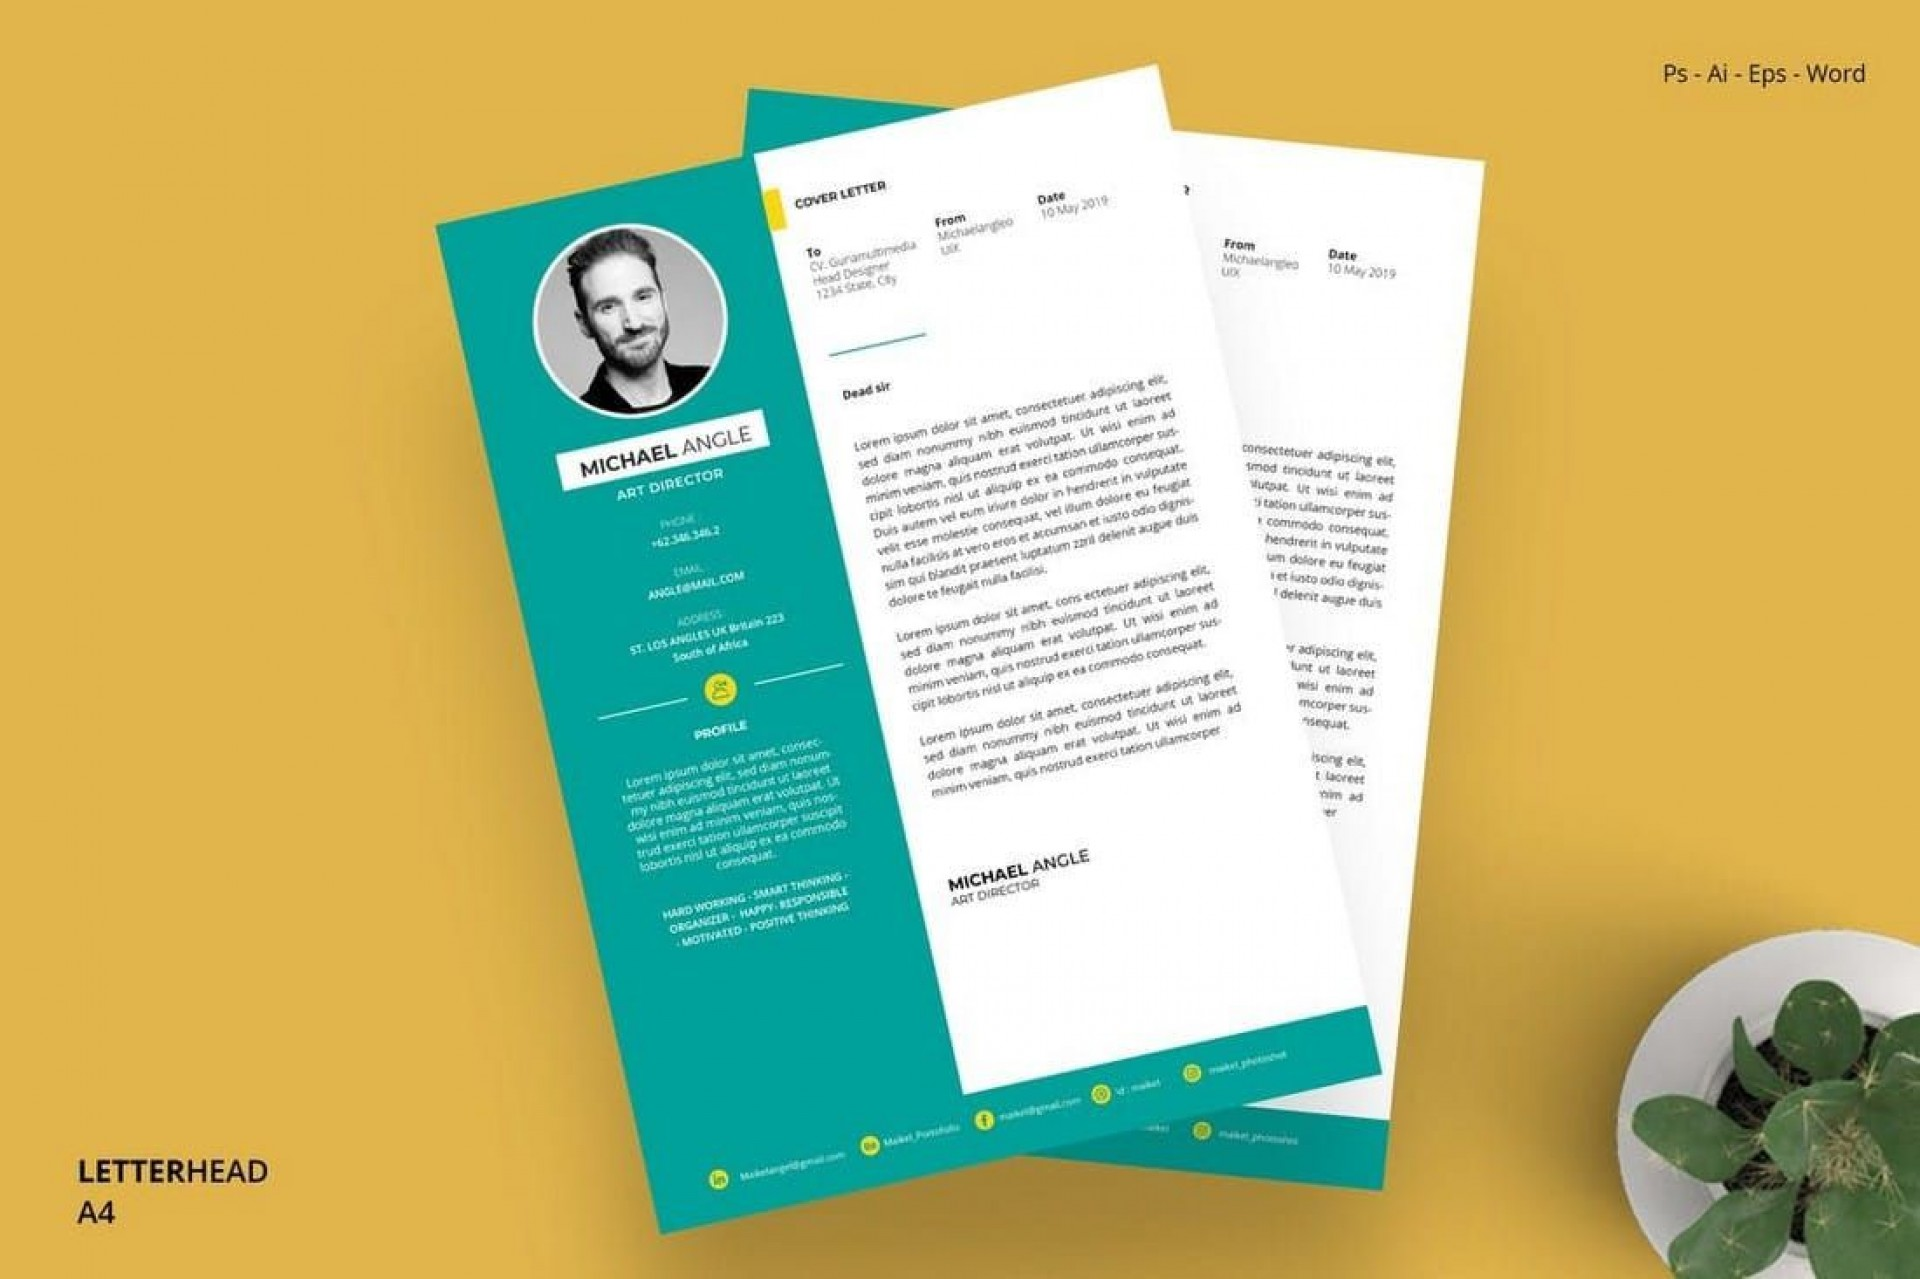 005 Marvelou Letterhead Template Free Download Ai Photo  File1920